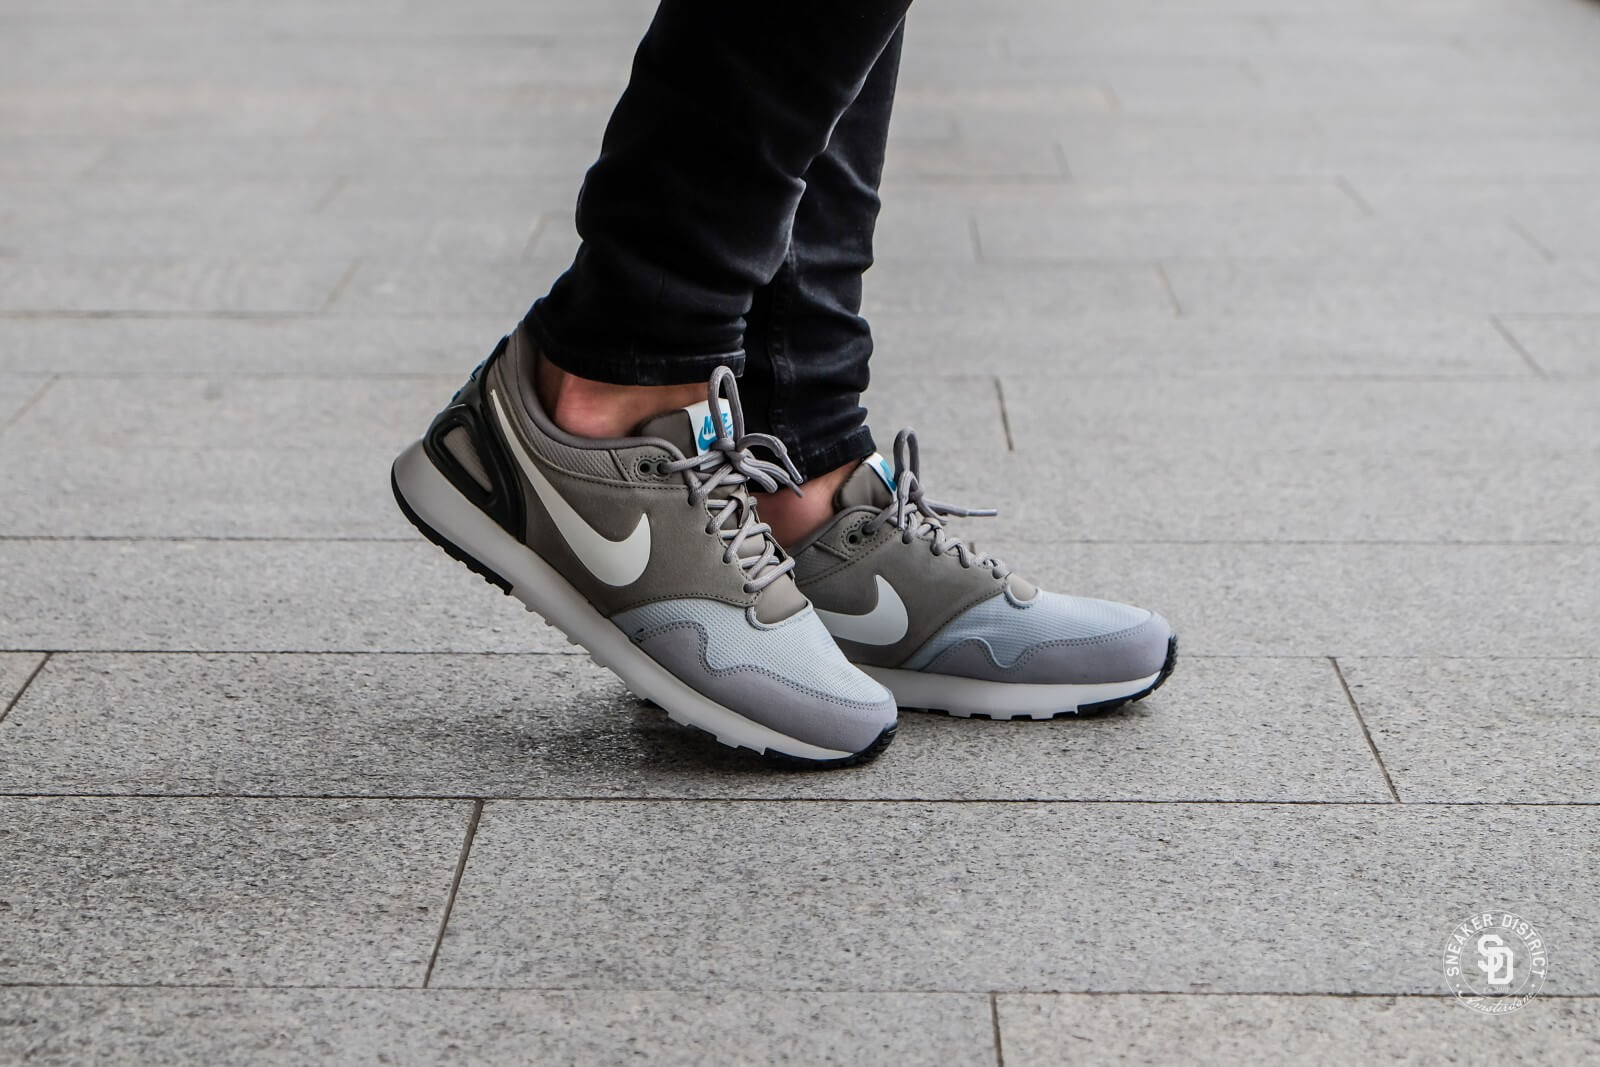 Nike 902807 Sneakers Femme Pale Grey/white-Black 43 L7lLwION6Y